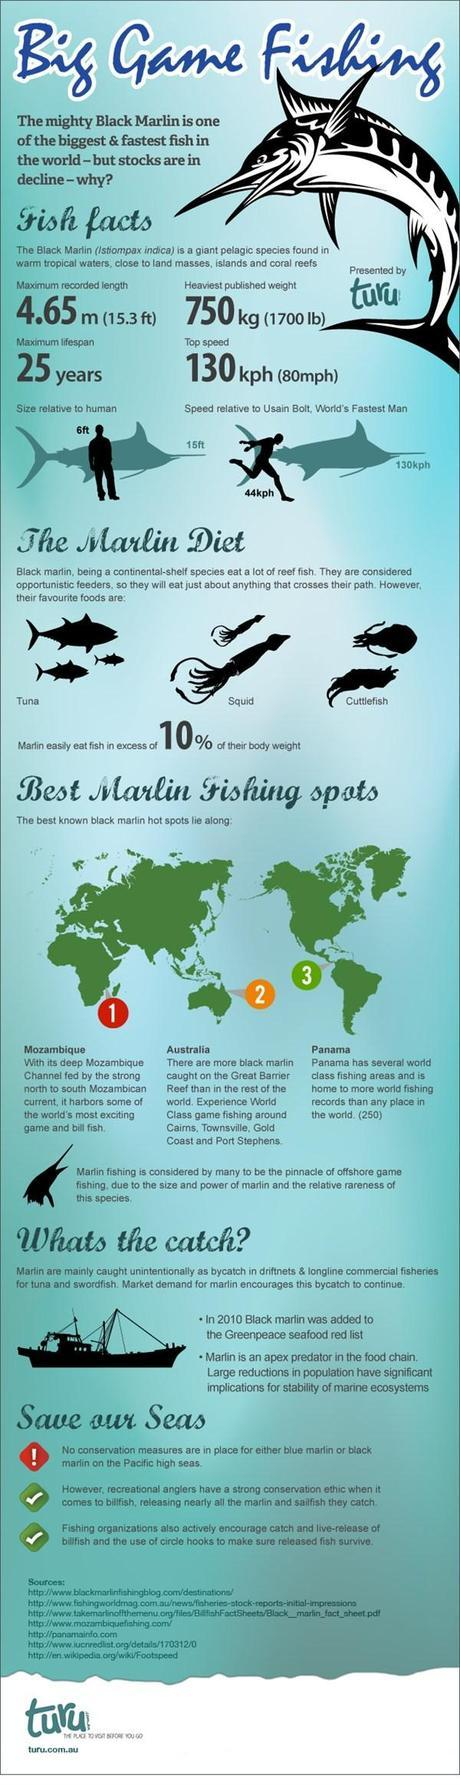 Big Game Fishing, Black Marlin Infographic